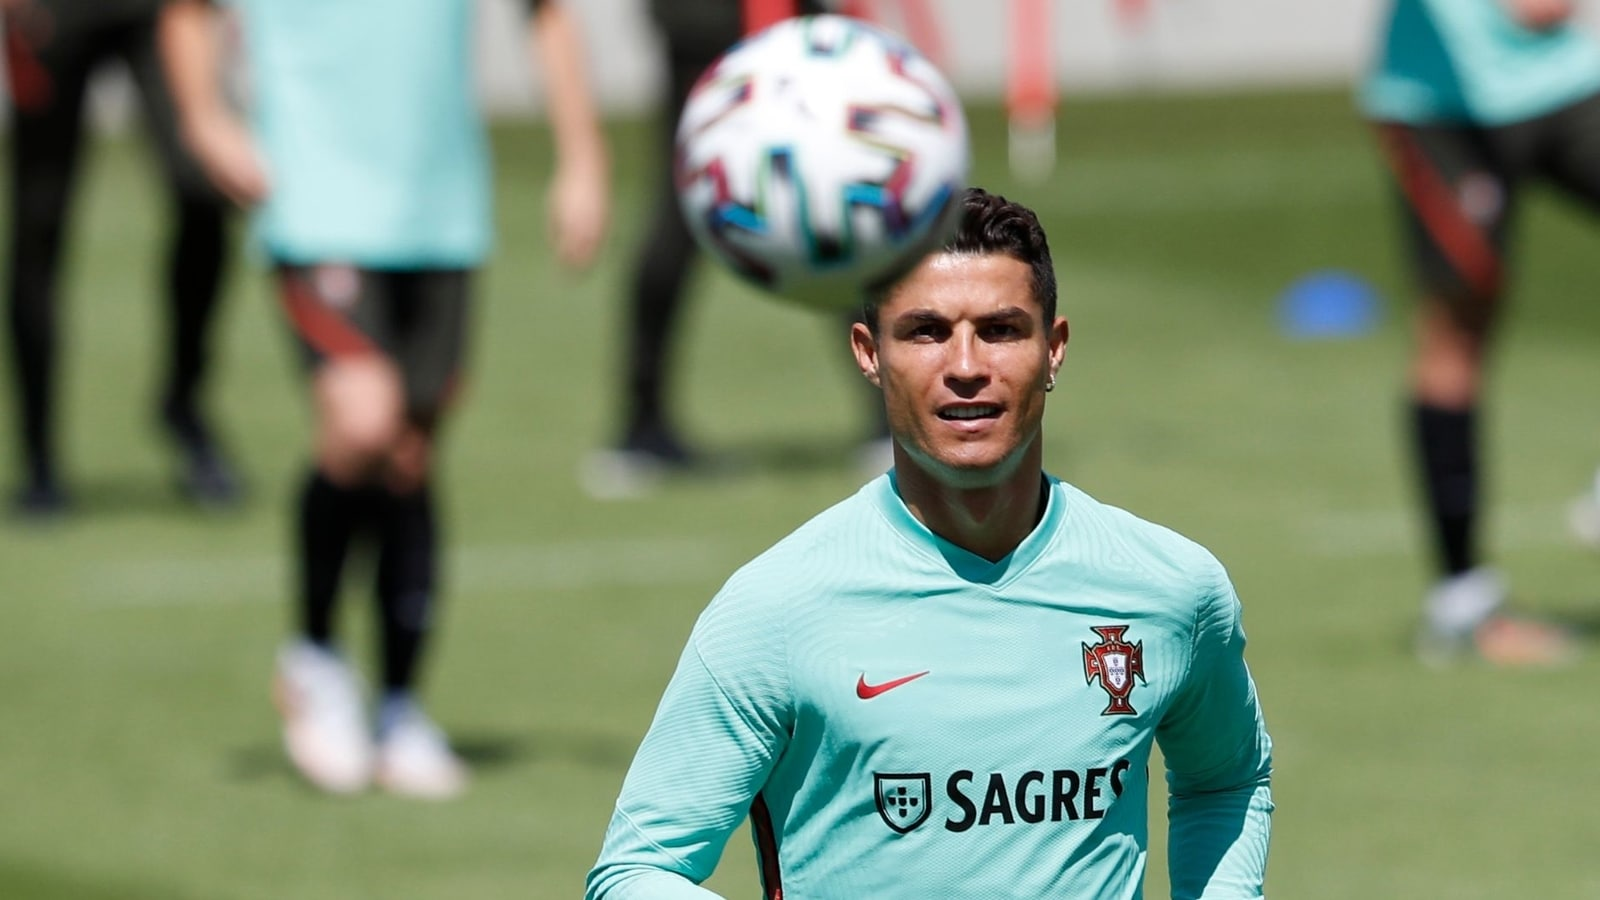 Euro 2020 Hungary Vs Portugal Preview Ronaldo Begins Quest For World Record Football News Hindustan Times